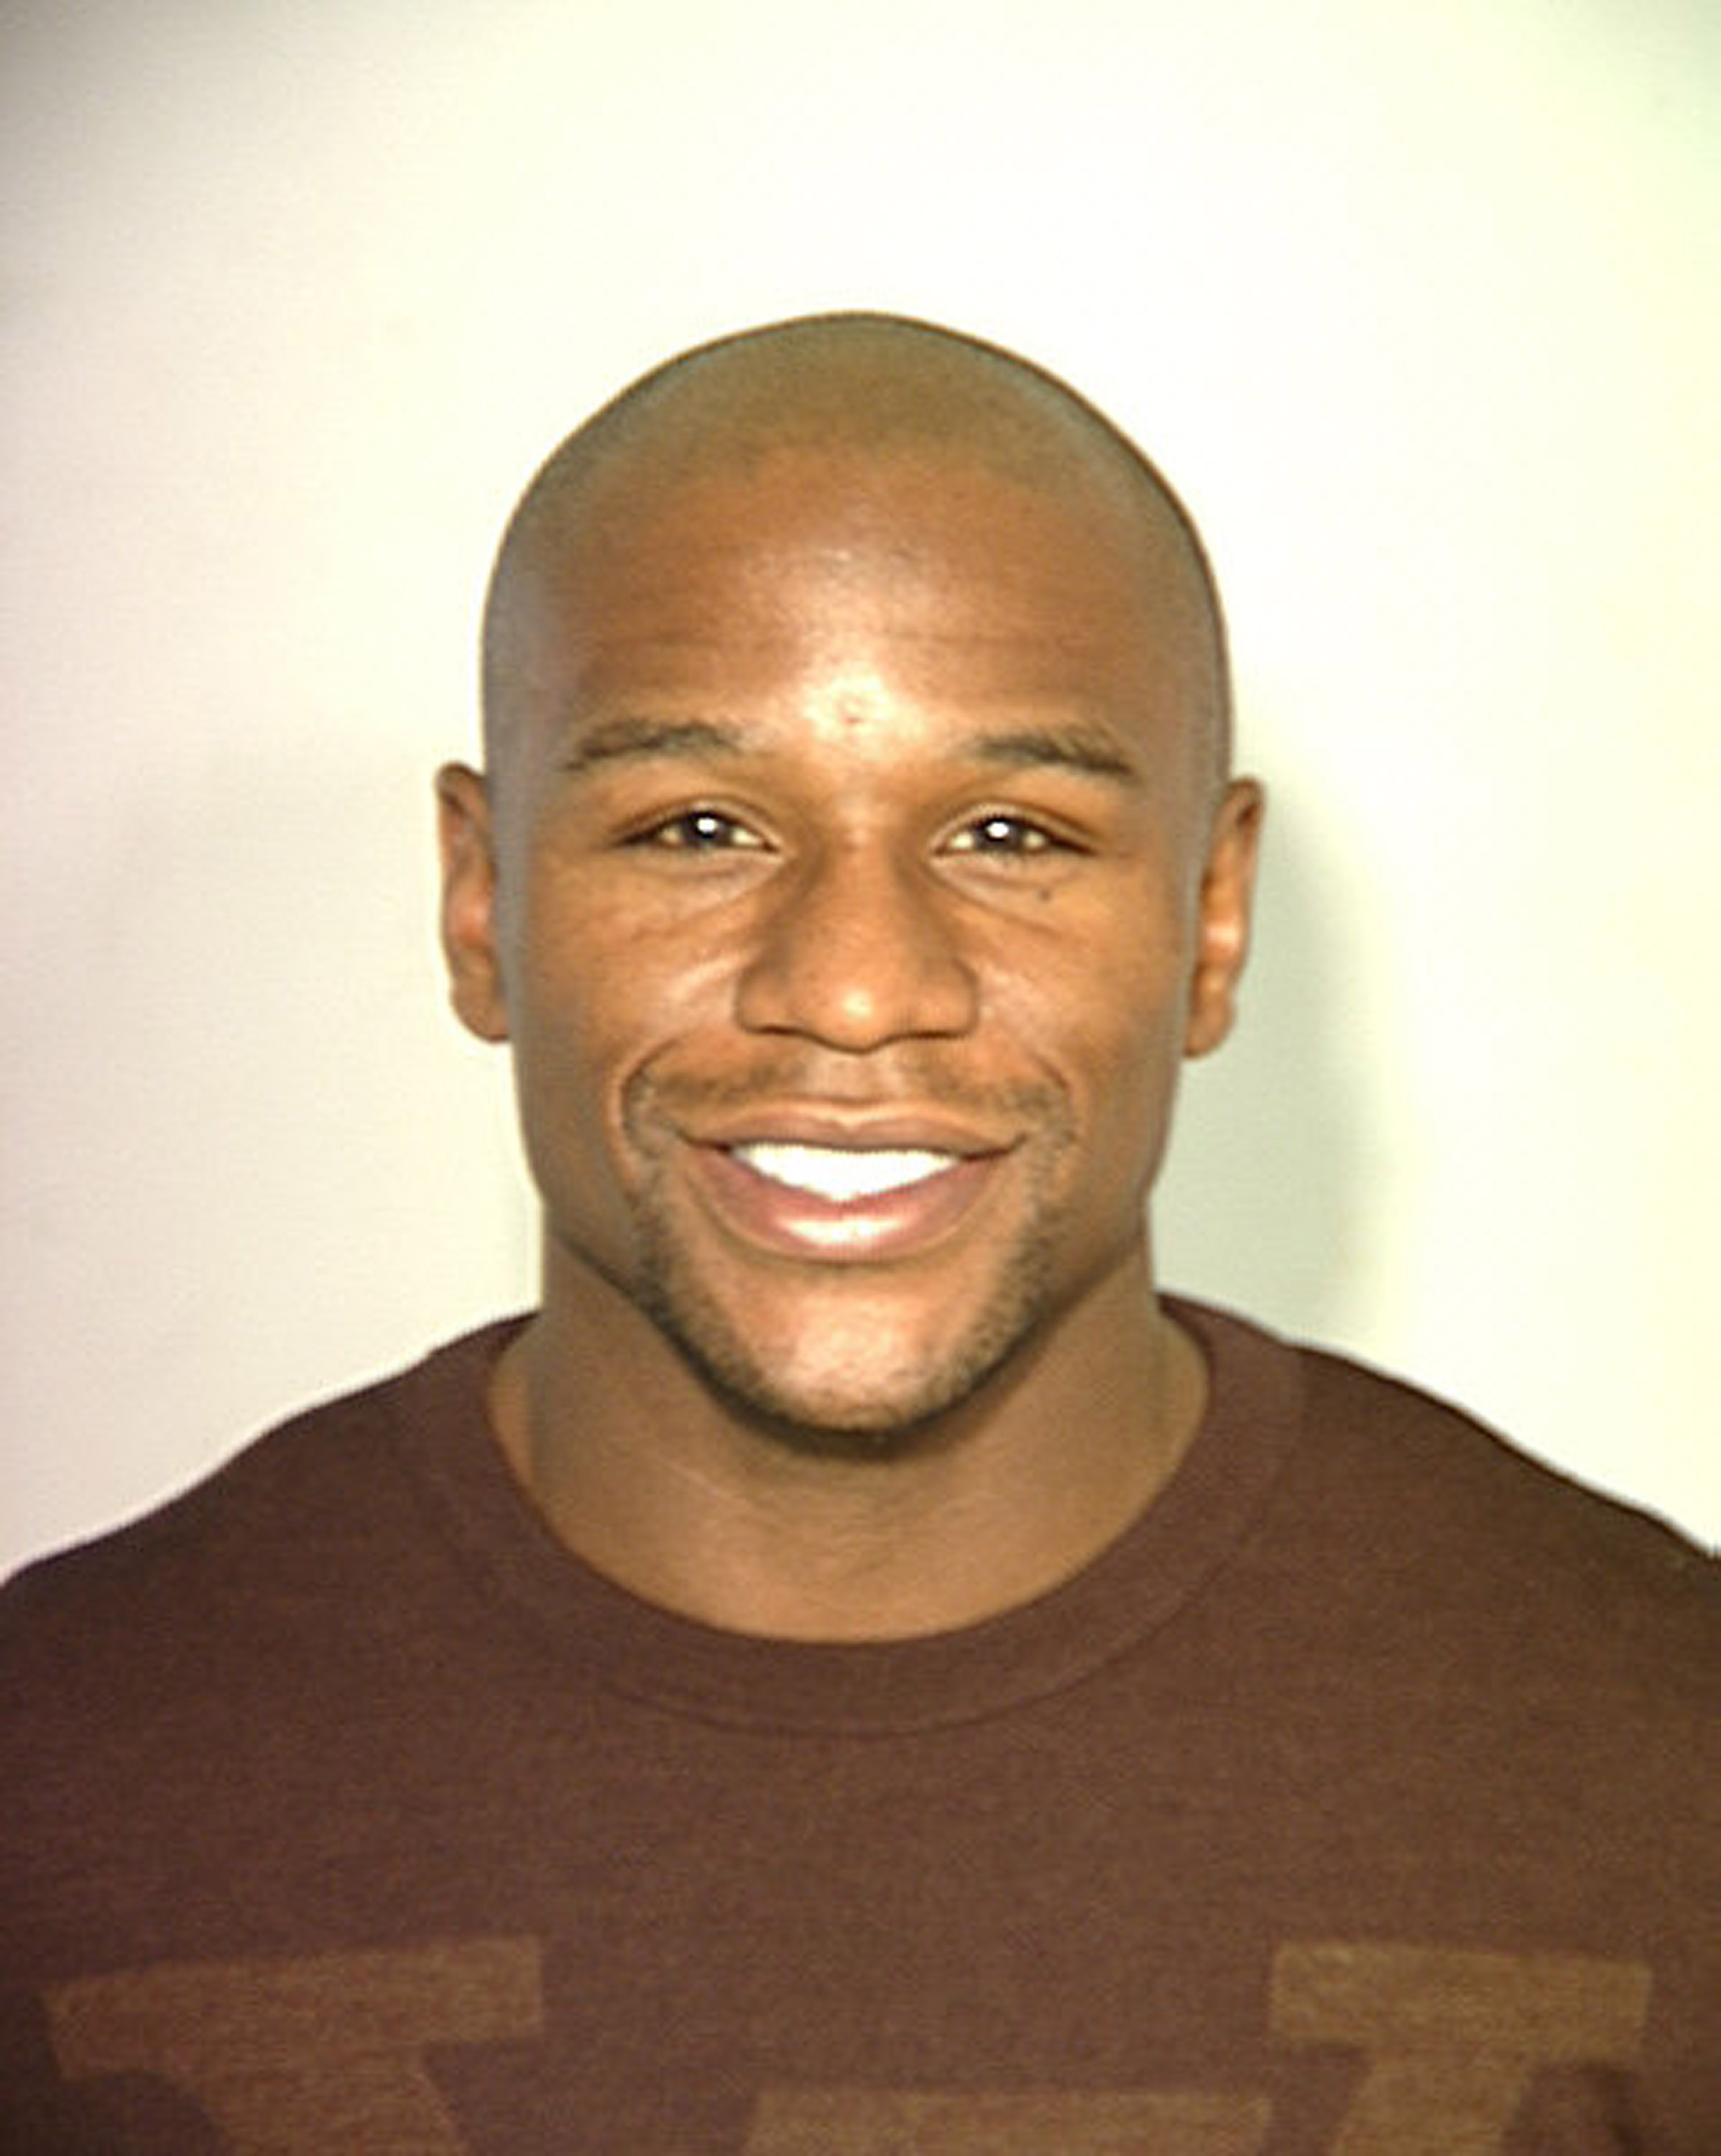 LAS VEGAS, NV - UNDATED: In this handout provided by the Las Vegas Police Department, boxer Floyd Mayweather Jr. poses for a mug shot in Las Vegas, Nevada. Mayweather was arrested for a misdemeanor battery warrant December 16, 2010 at a casino on the Las